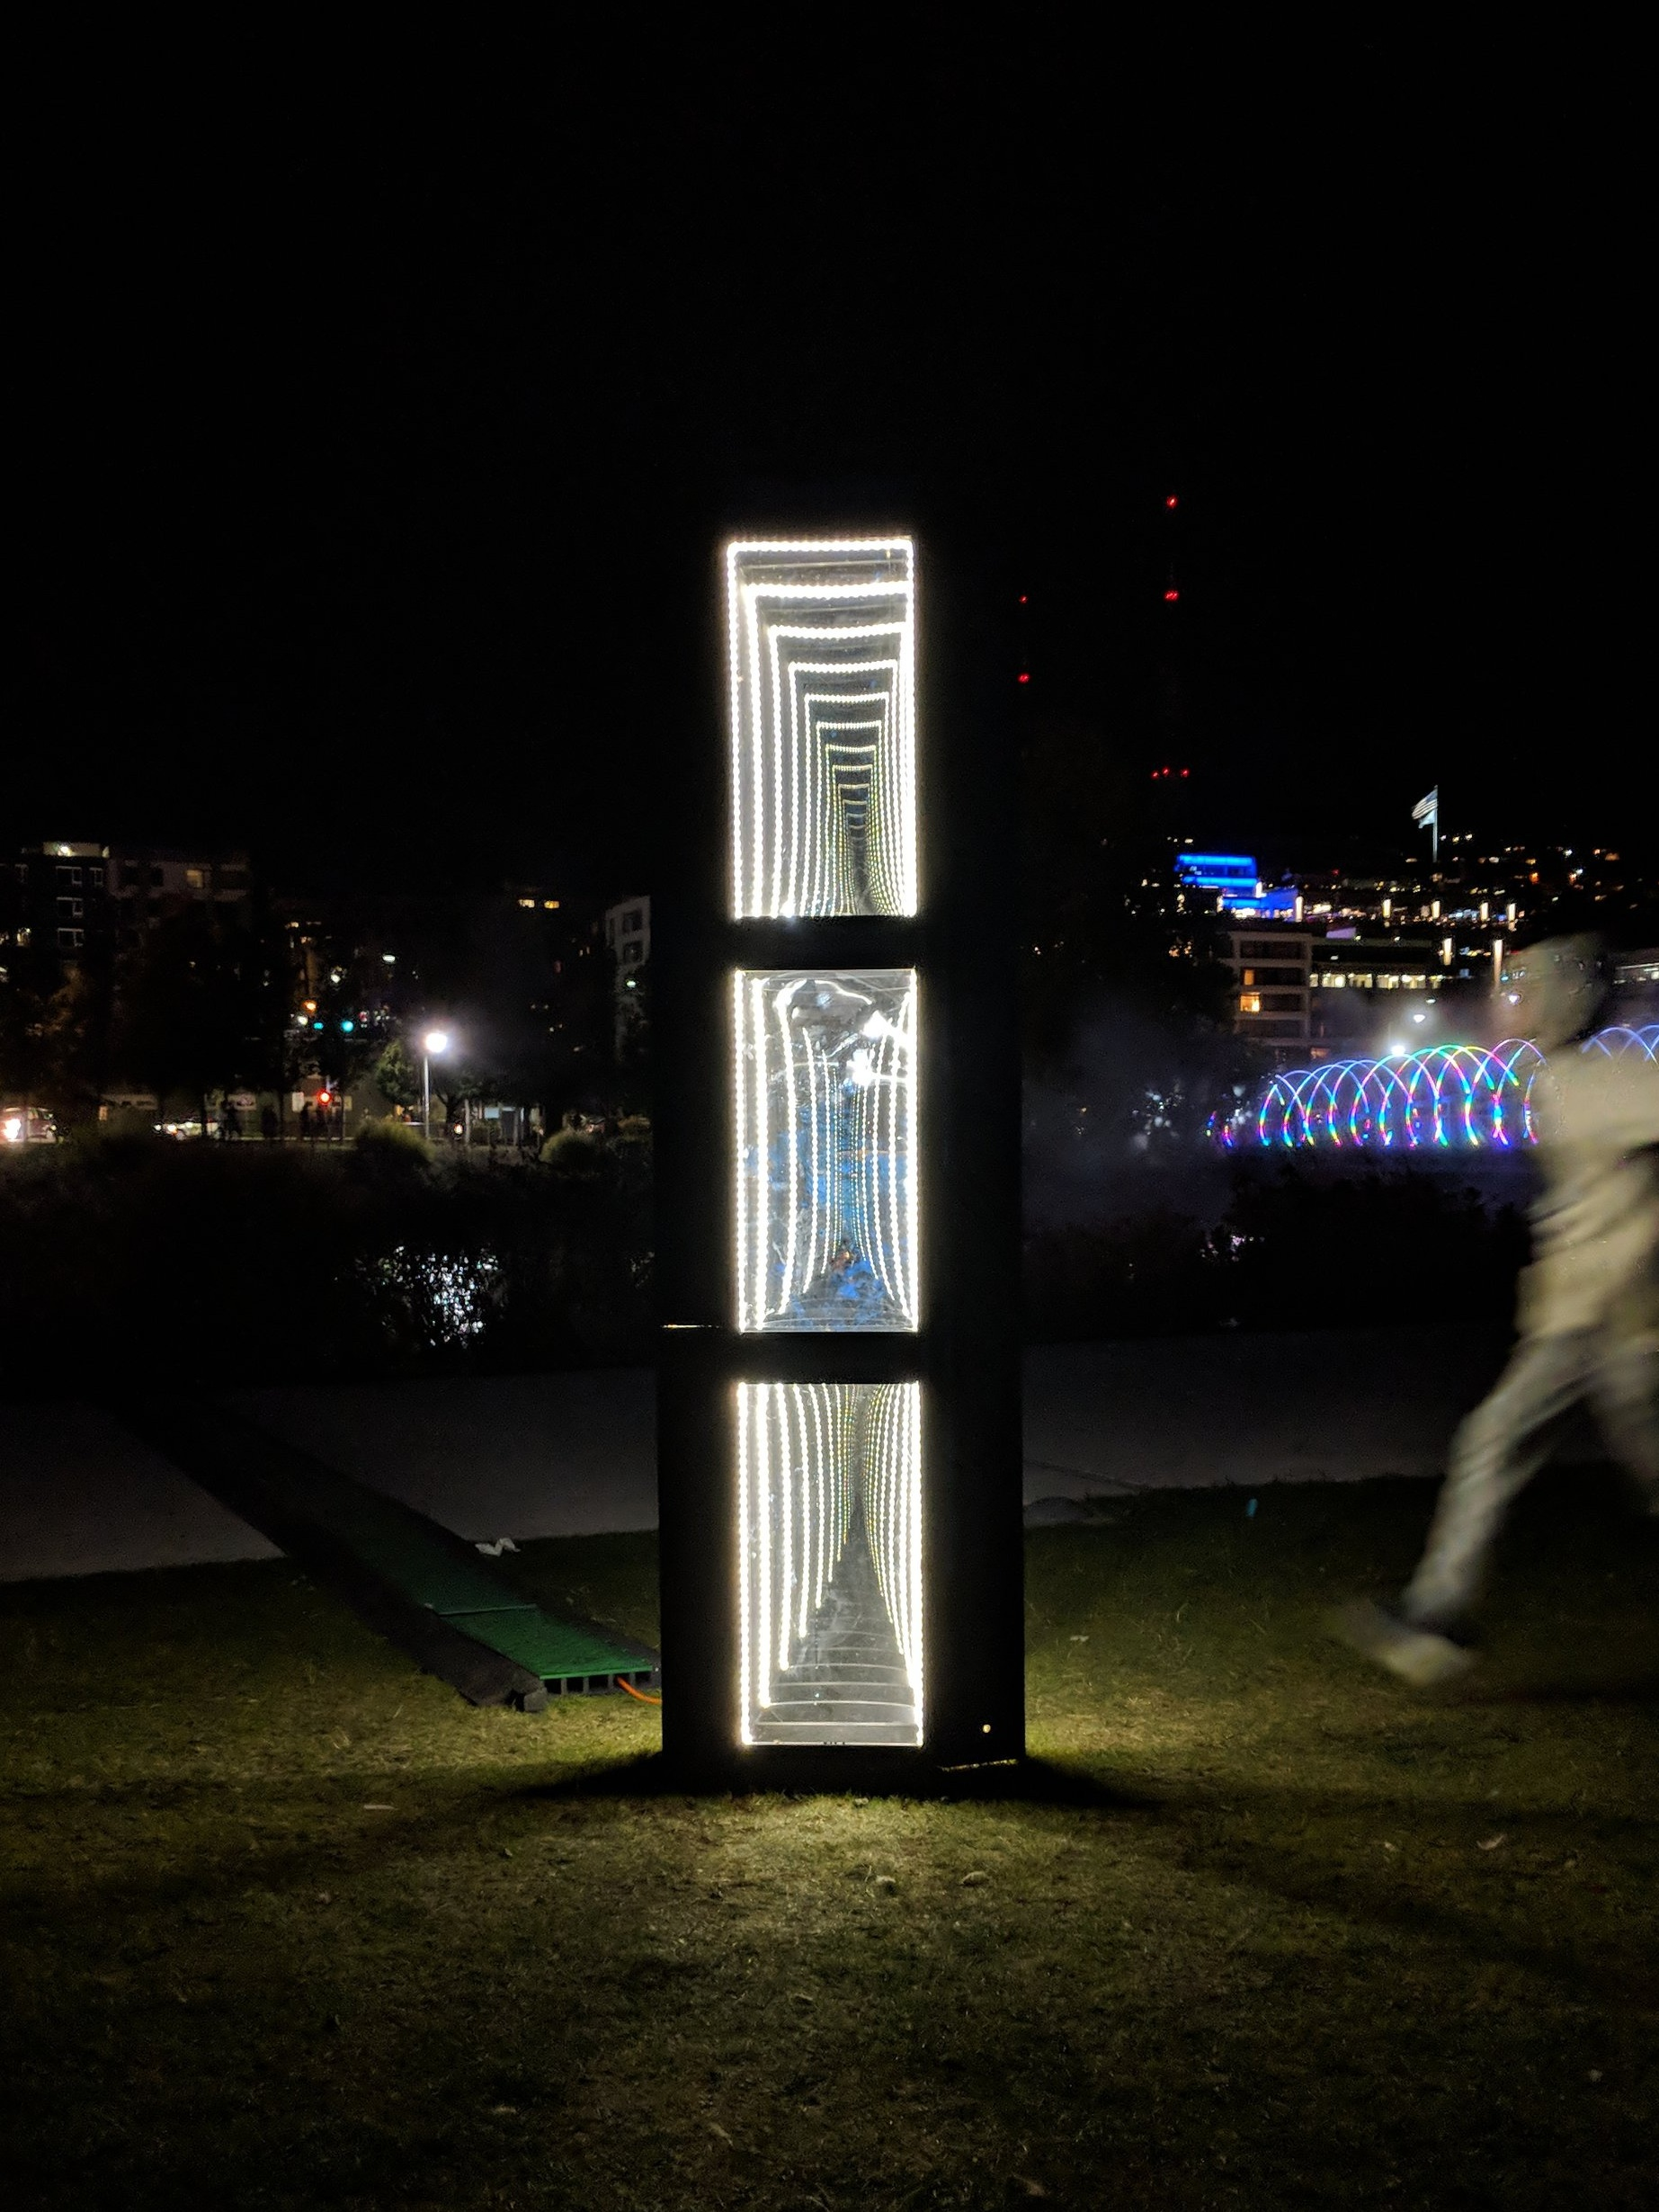 - Reflection of Monolith, was commissioned by the city of Seattle for Borealis Festival of Light, located in South Lake Union, Seattle, WA. The light sculpture is 8' x 3' and displays three infinity mirrors.